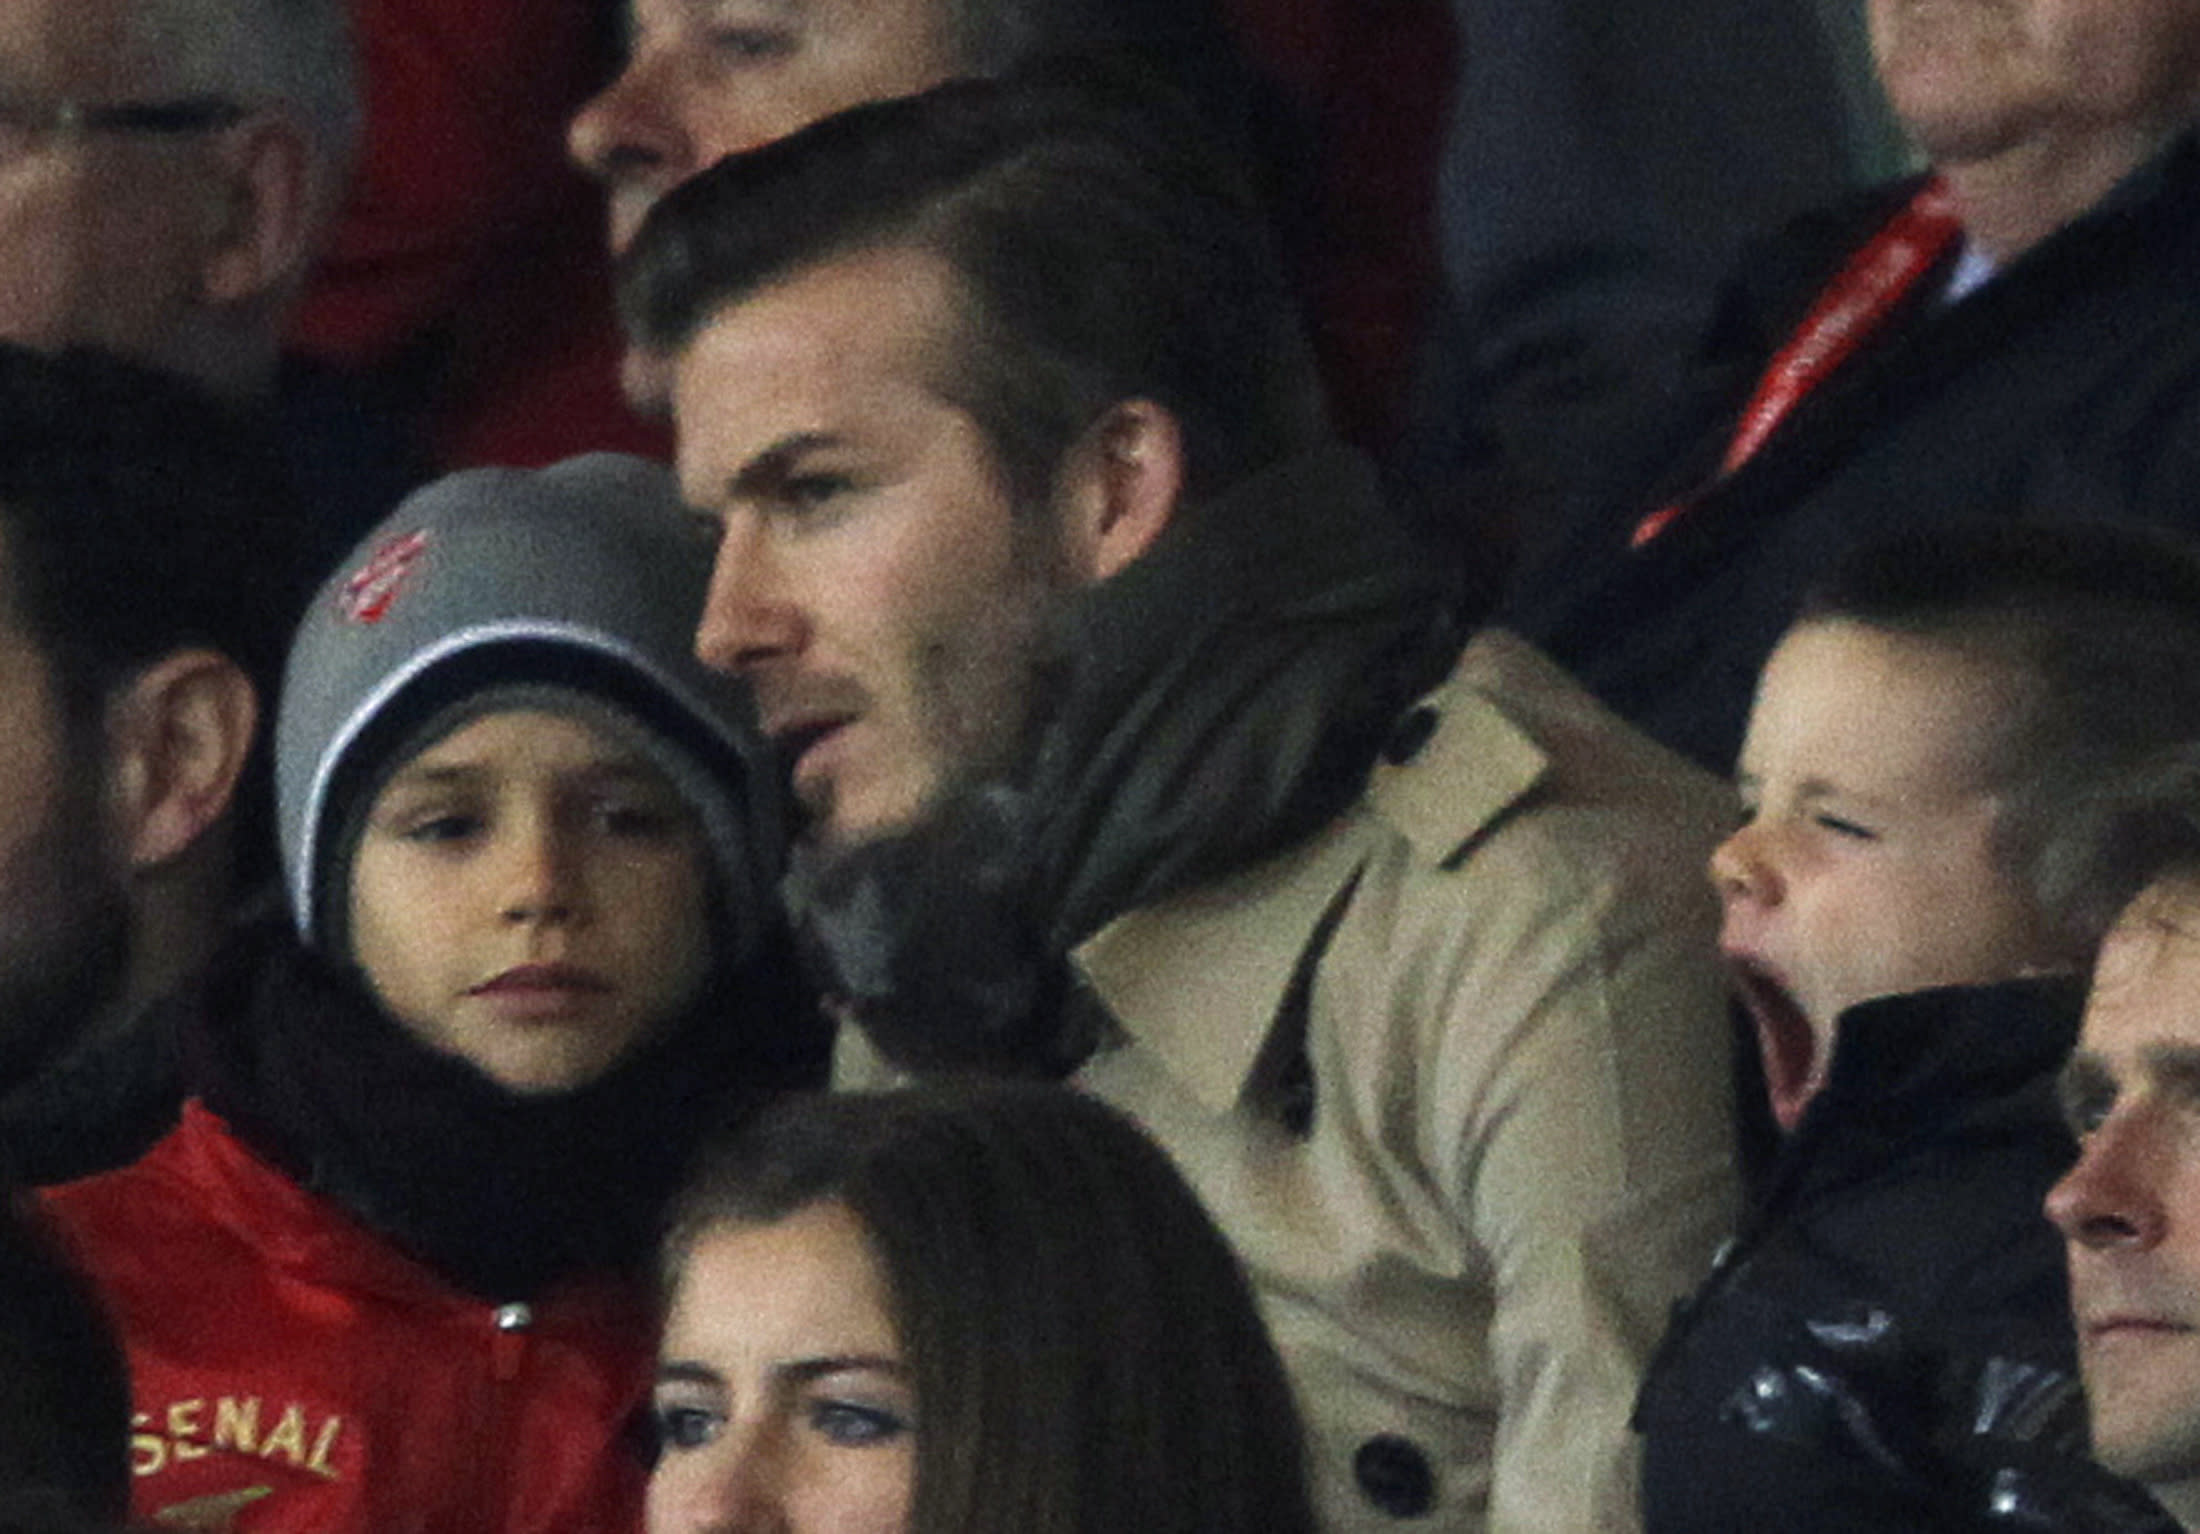 David Beckham and his sons, Brooklyn Joseph (L) and Romeo James, watch the FA Cup soccer match between Arsenal and Leeds United at the Emirates Stadium in London, January 9, 2012. REUTERS/Eddie Keogh (BRITAIN - Tags: SPORT SOCCER)